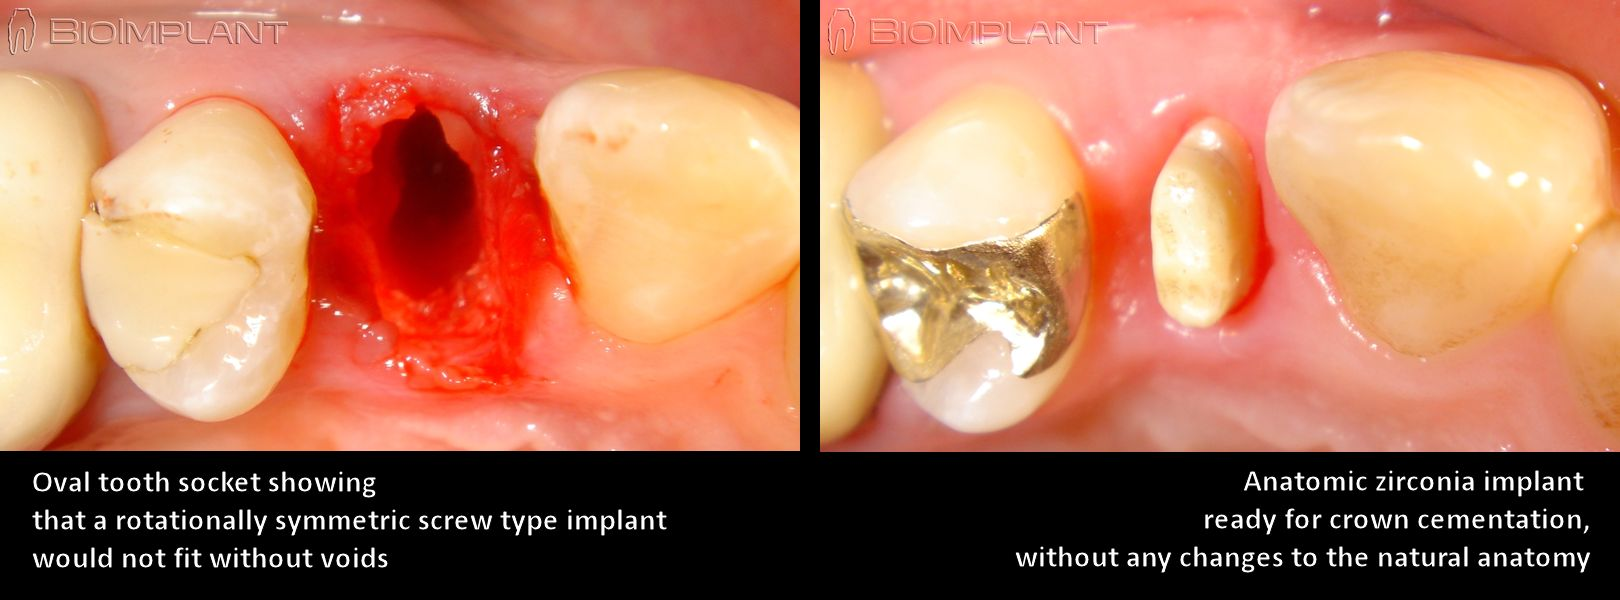 oval_tooth_socket_premolar_anatomic_implant